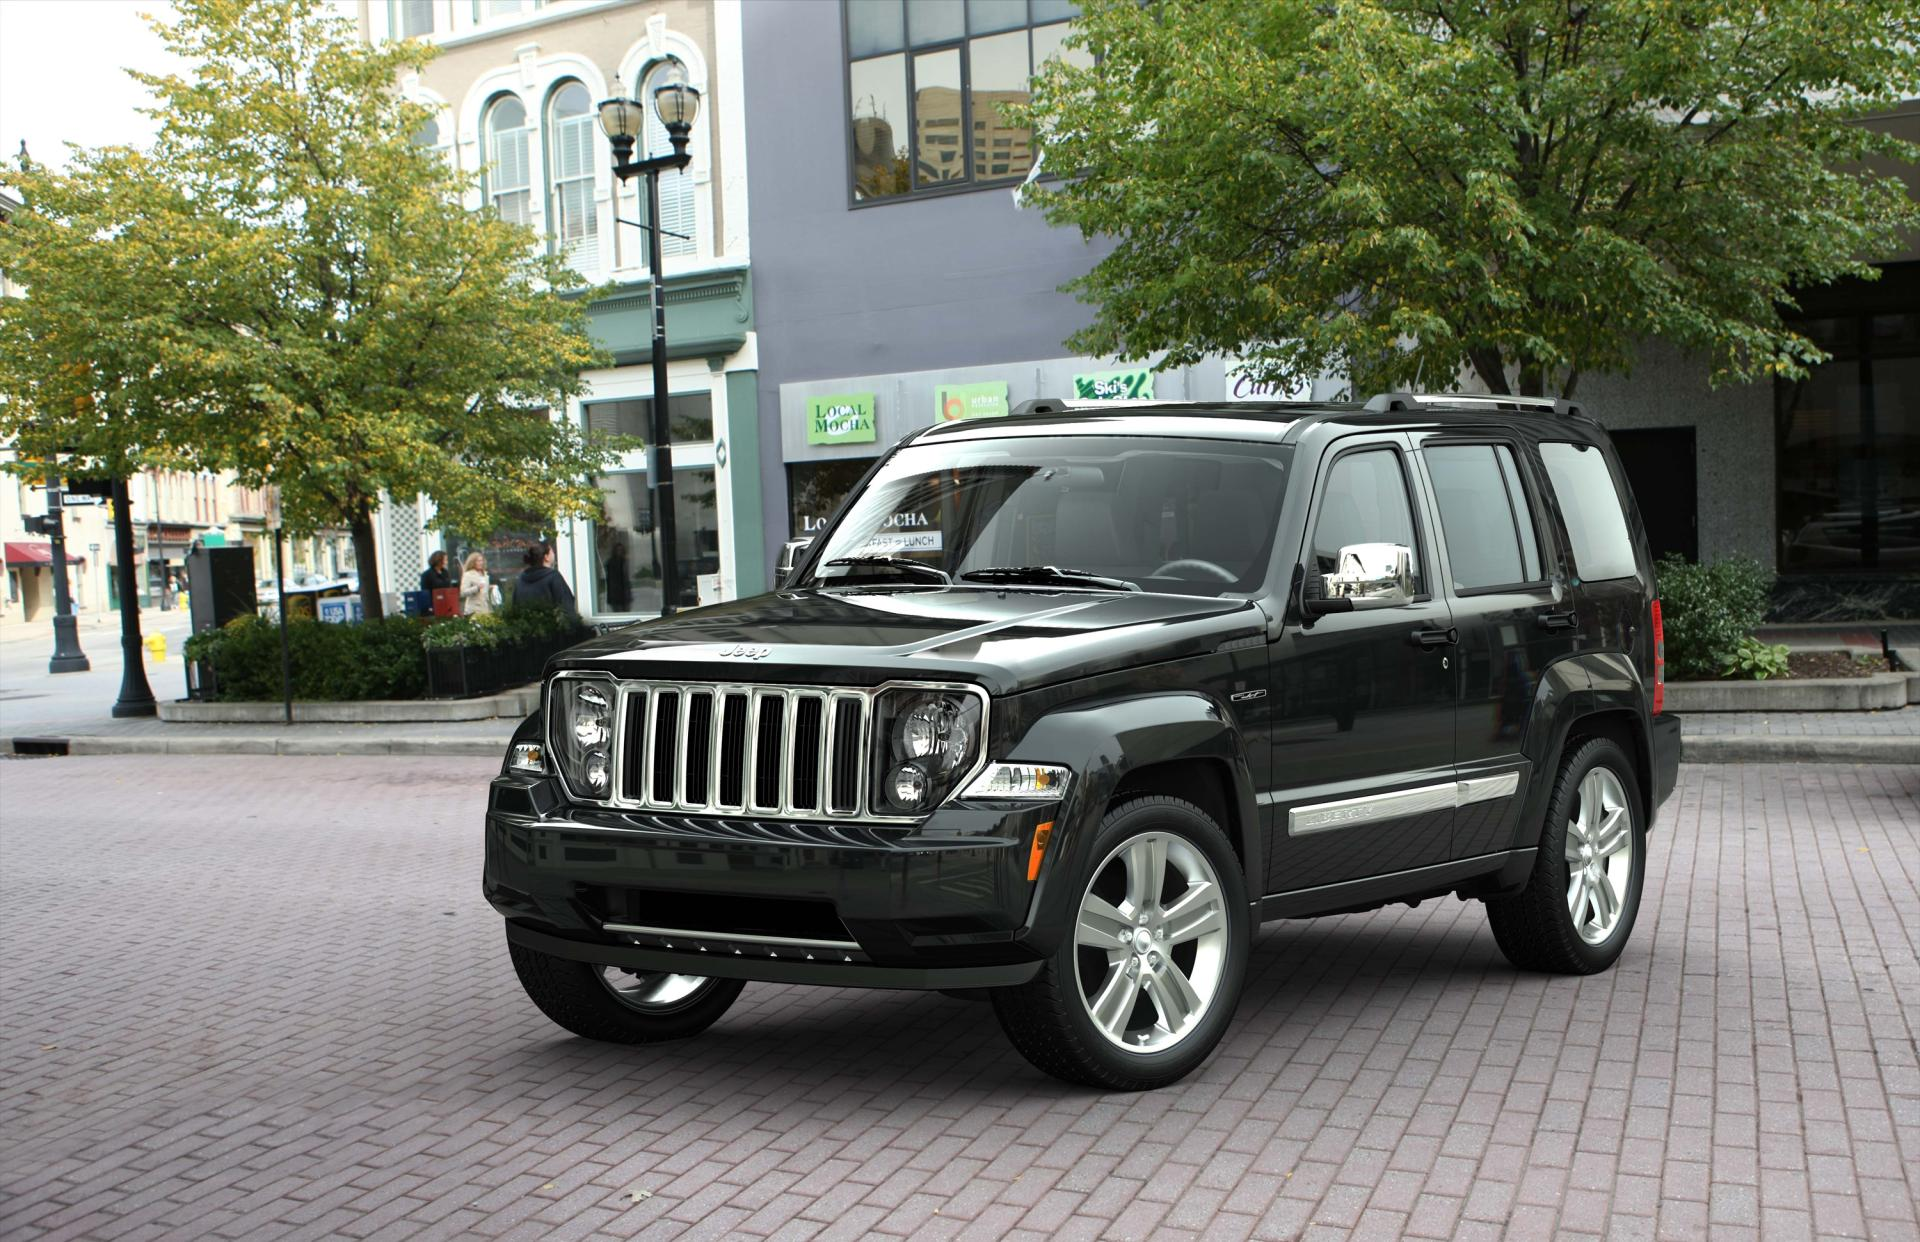 Liberty Auto Sales >> 2012 Jeep Liberty - conceptcarz.com